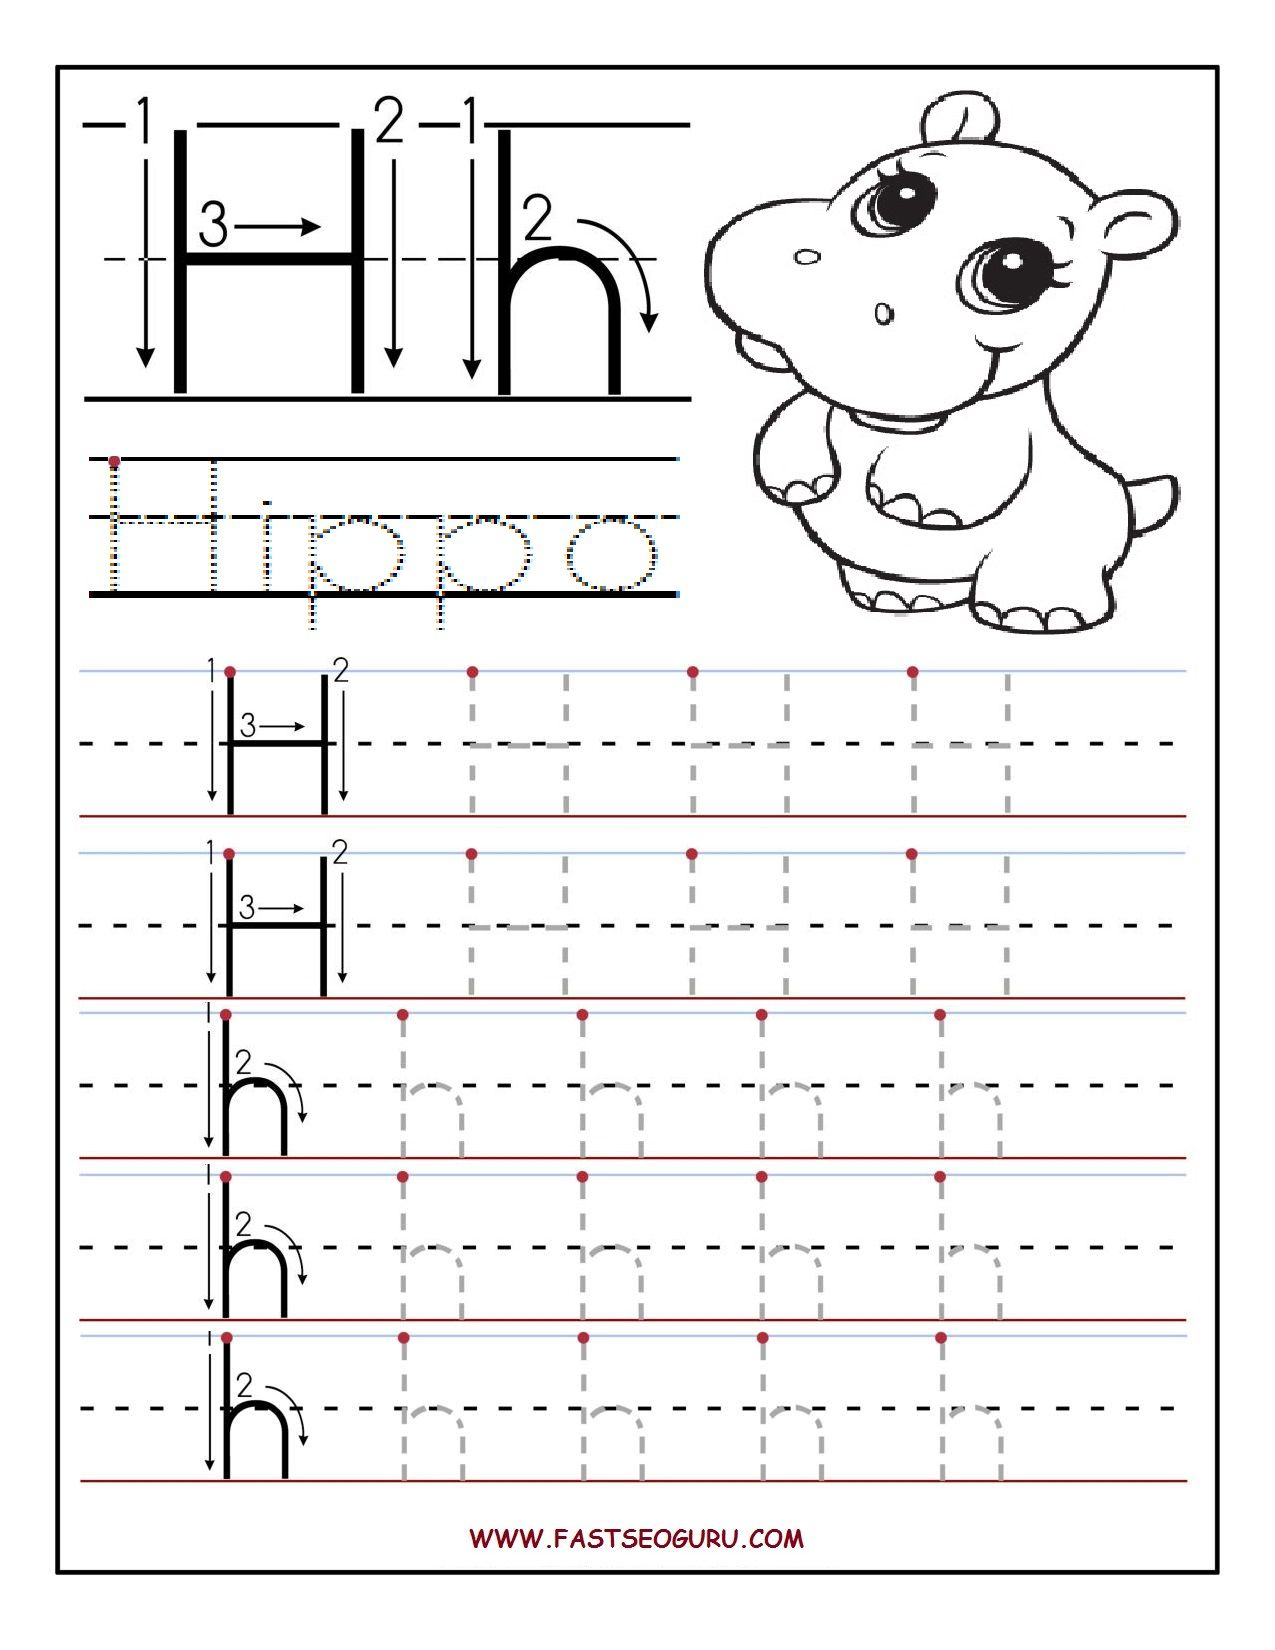 Printable Letter H Tracing Worksheets For Preschool intended for Tracing Letter H Worksheets